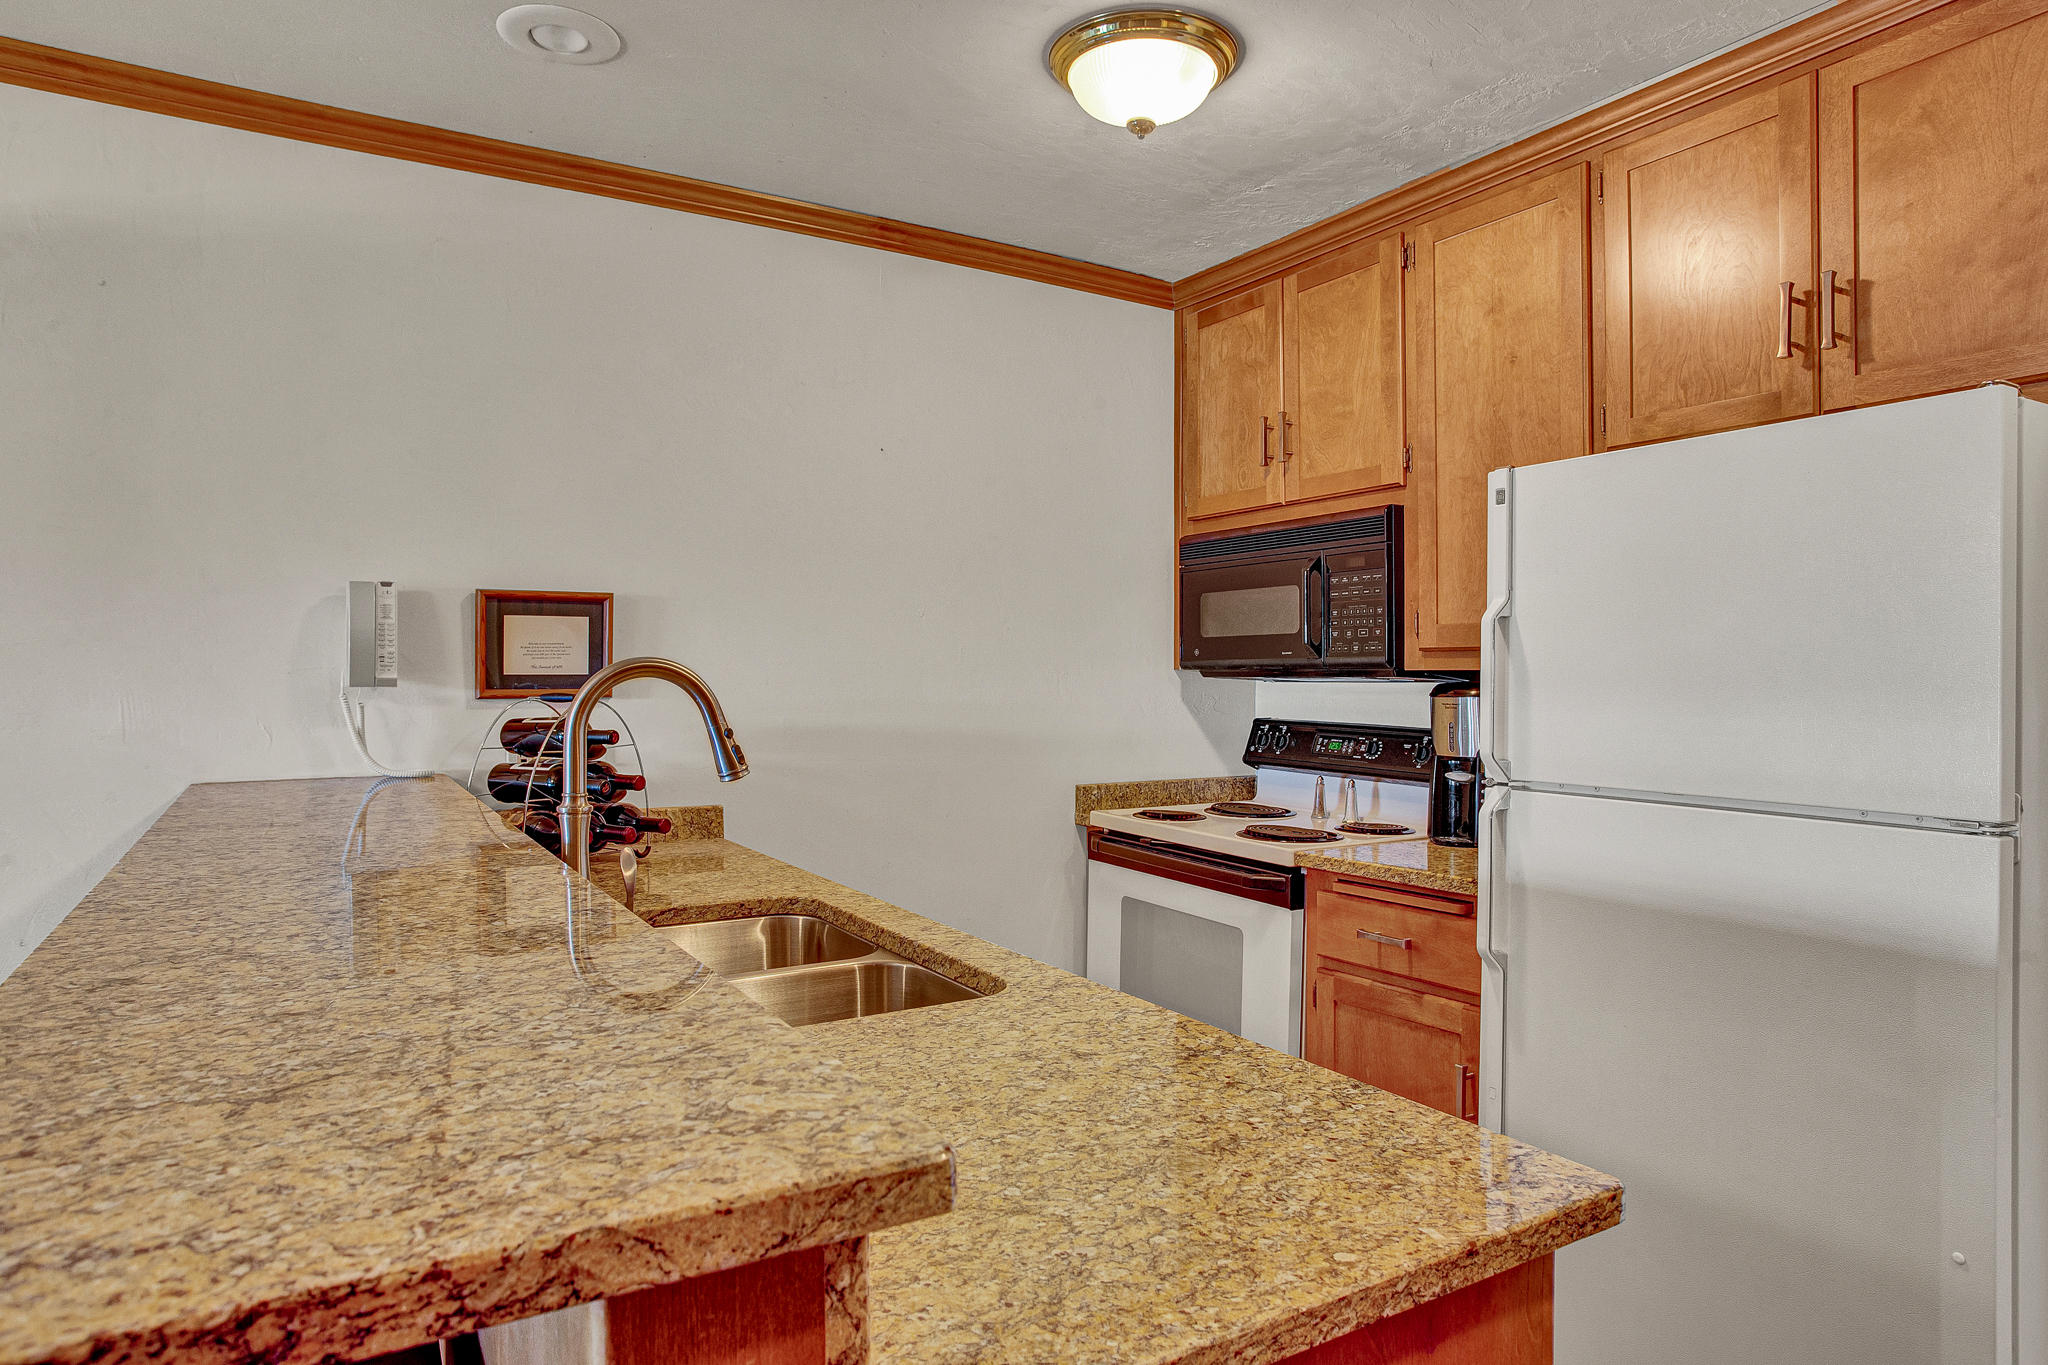 101 Osthoff Ave, Elkhart Lake, Wisconsin 53020, 2 Bedrooms Bedrooms, ,2 BathroomsBathrooms,Condominium,For Sale,Osthoff Ave,1722927